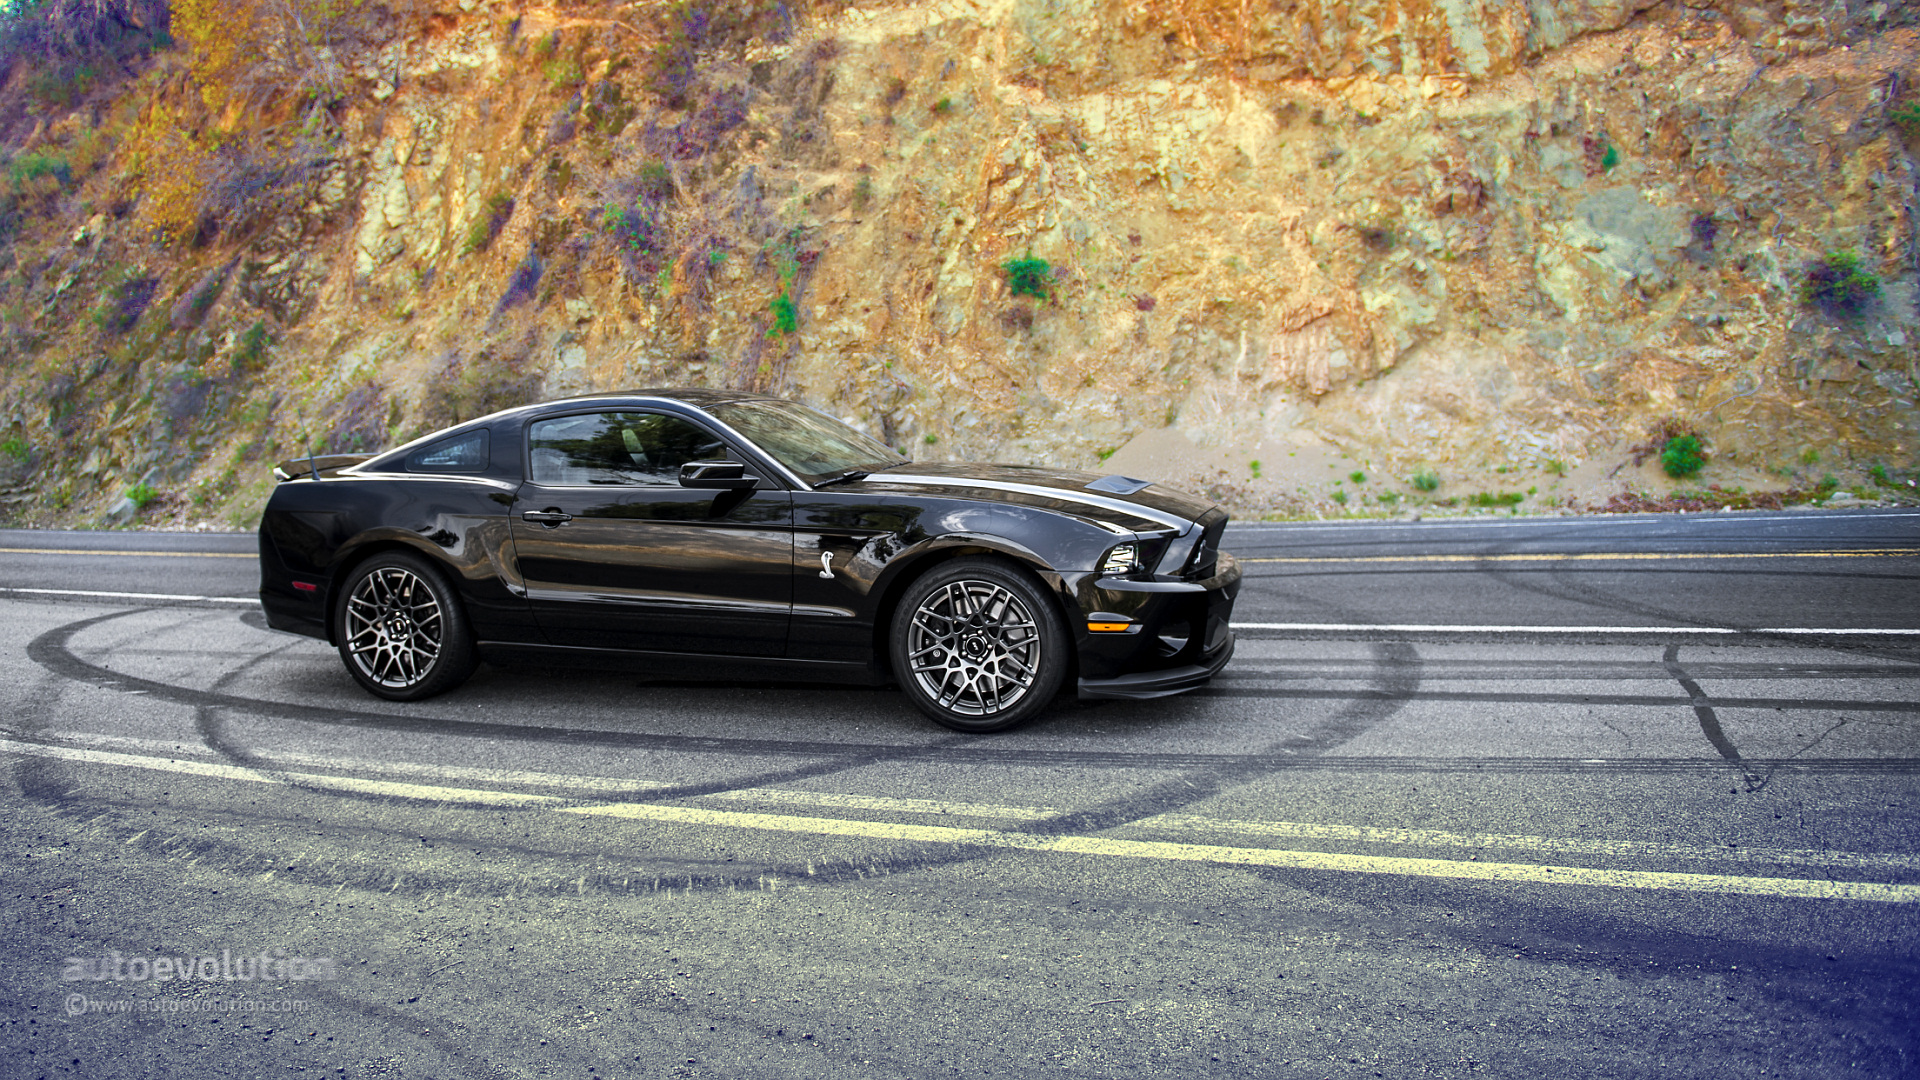 2014 ford shelby gt500 - Like